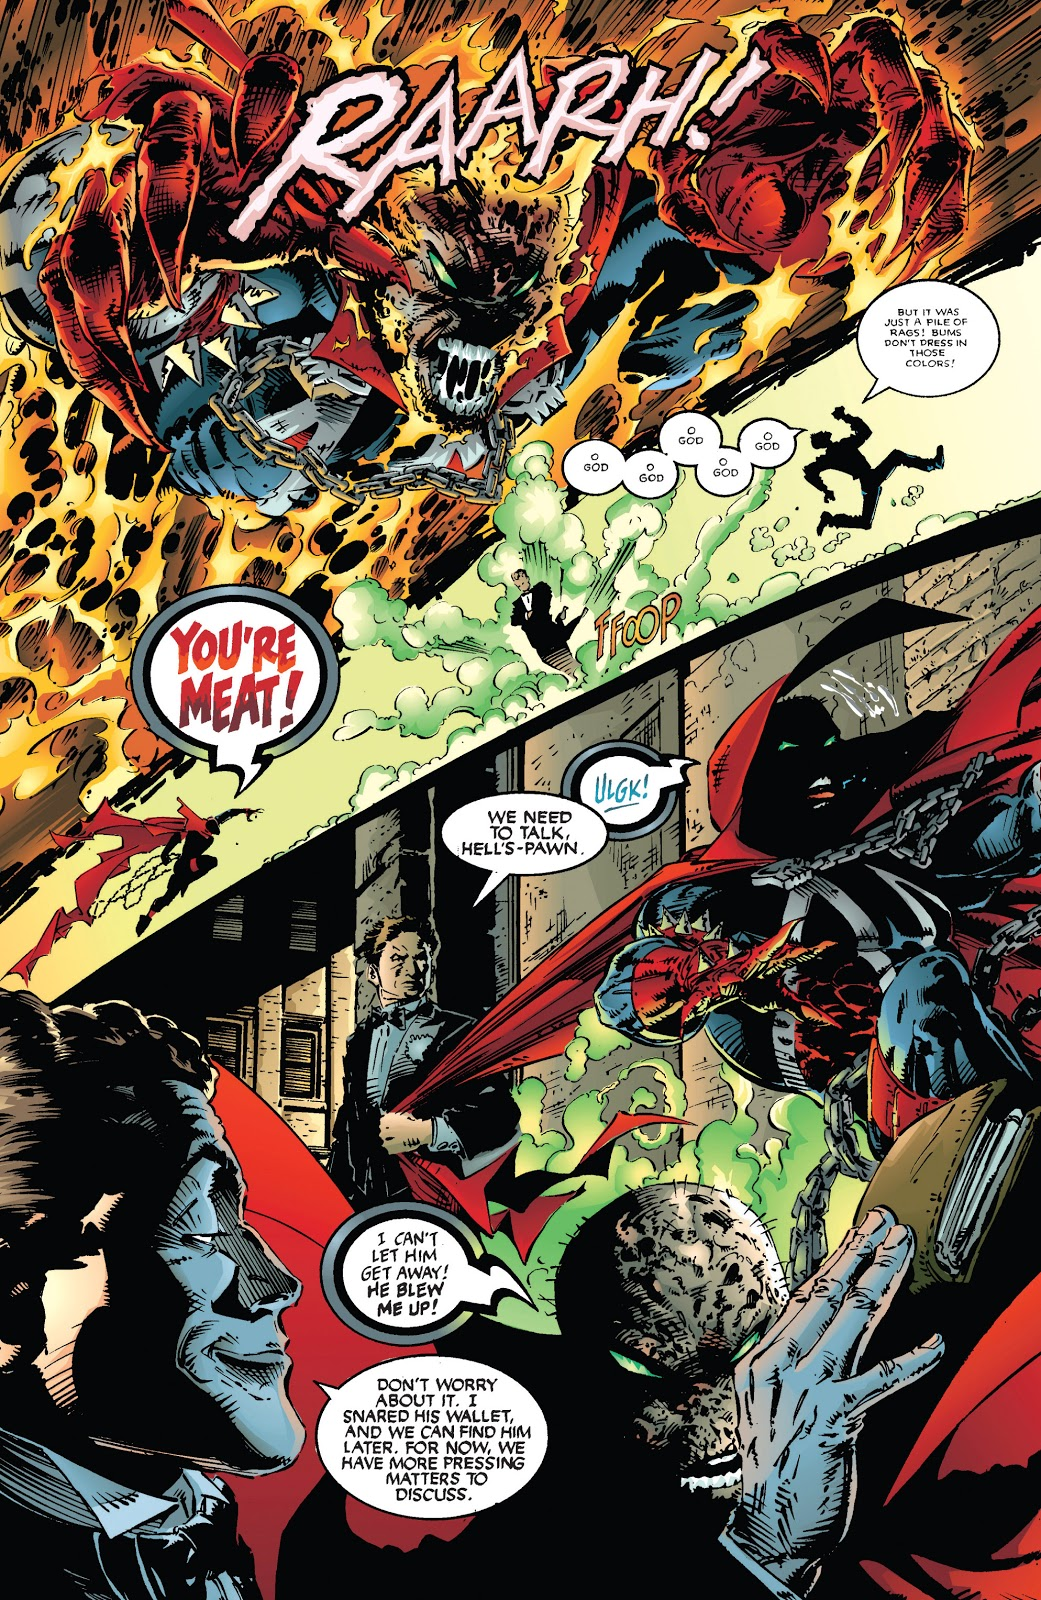 In 'Spawn' (1994) #19, Spawn survives an explosion of a click of bottles. He pursues the assailant, only to be interrupted by Harry Houdini.